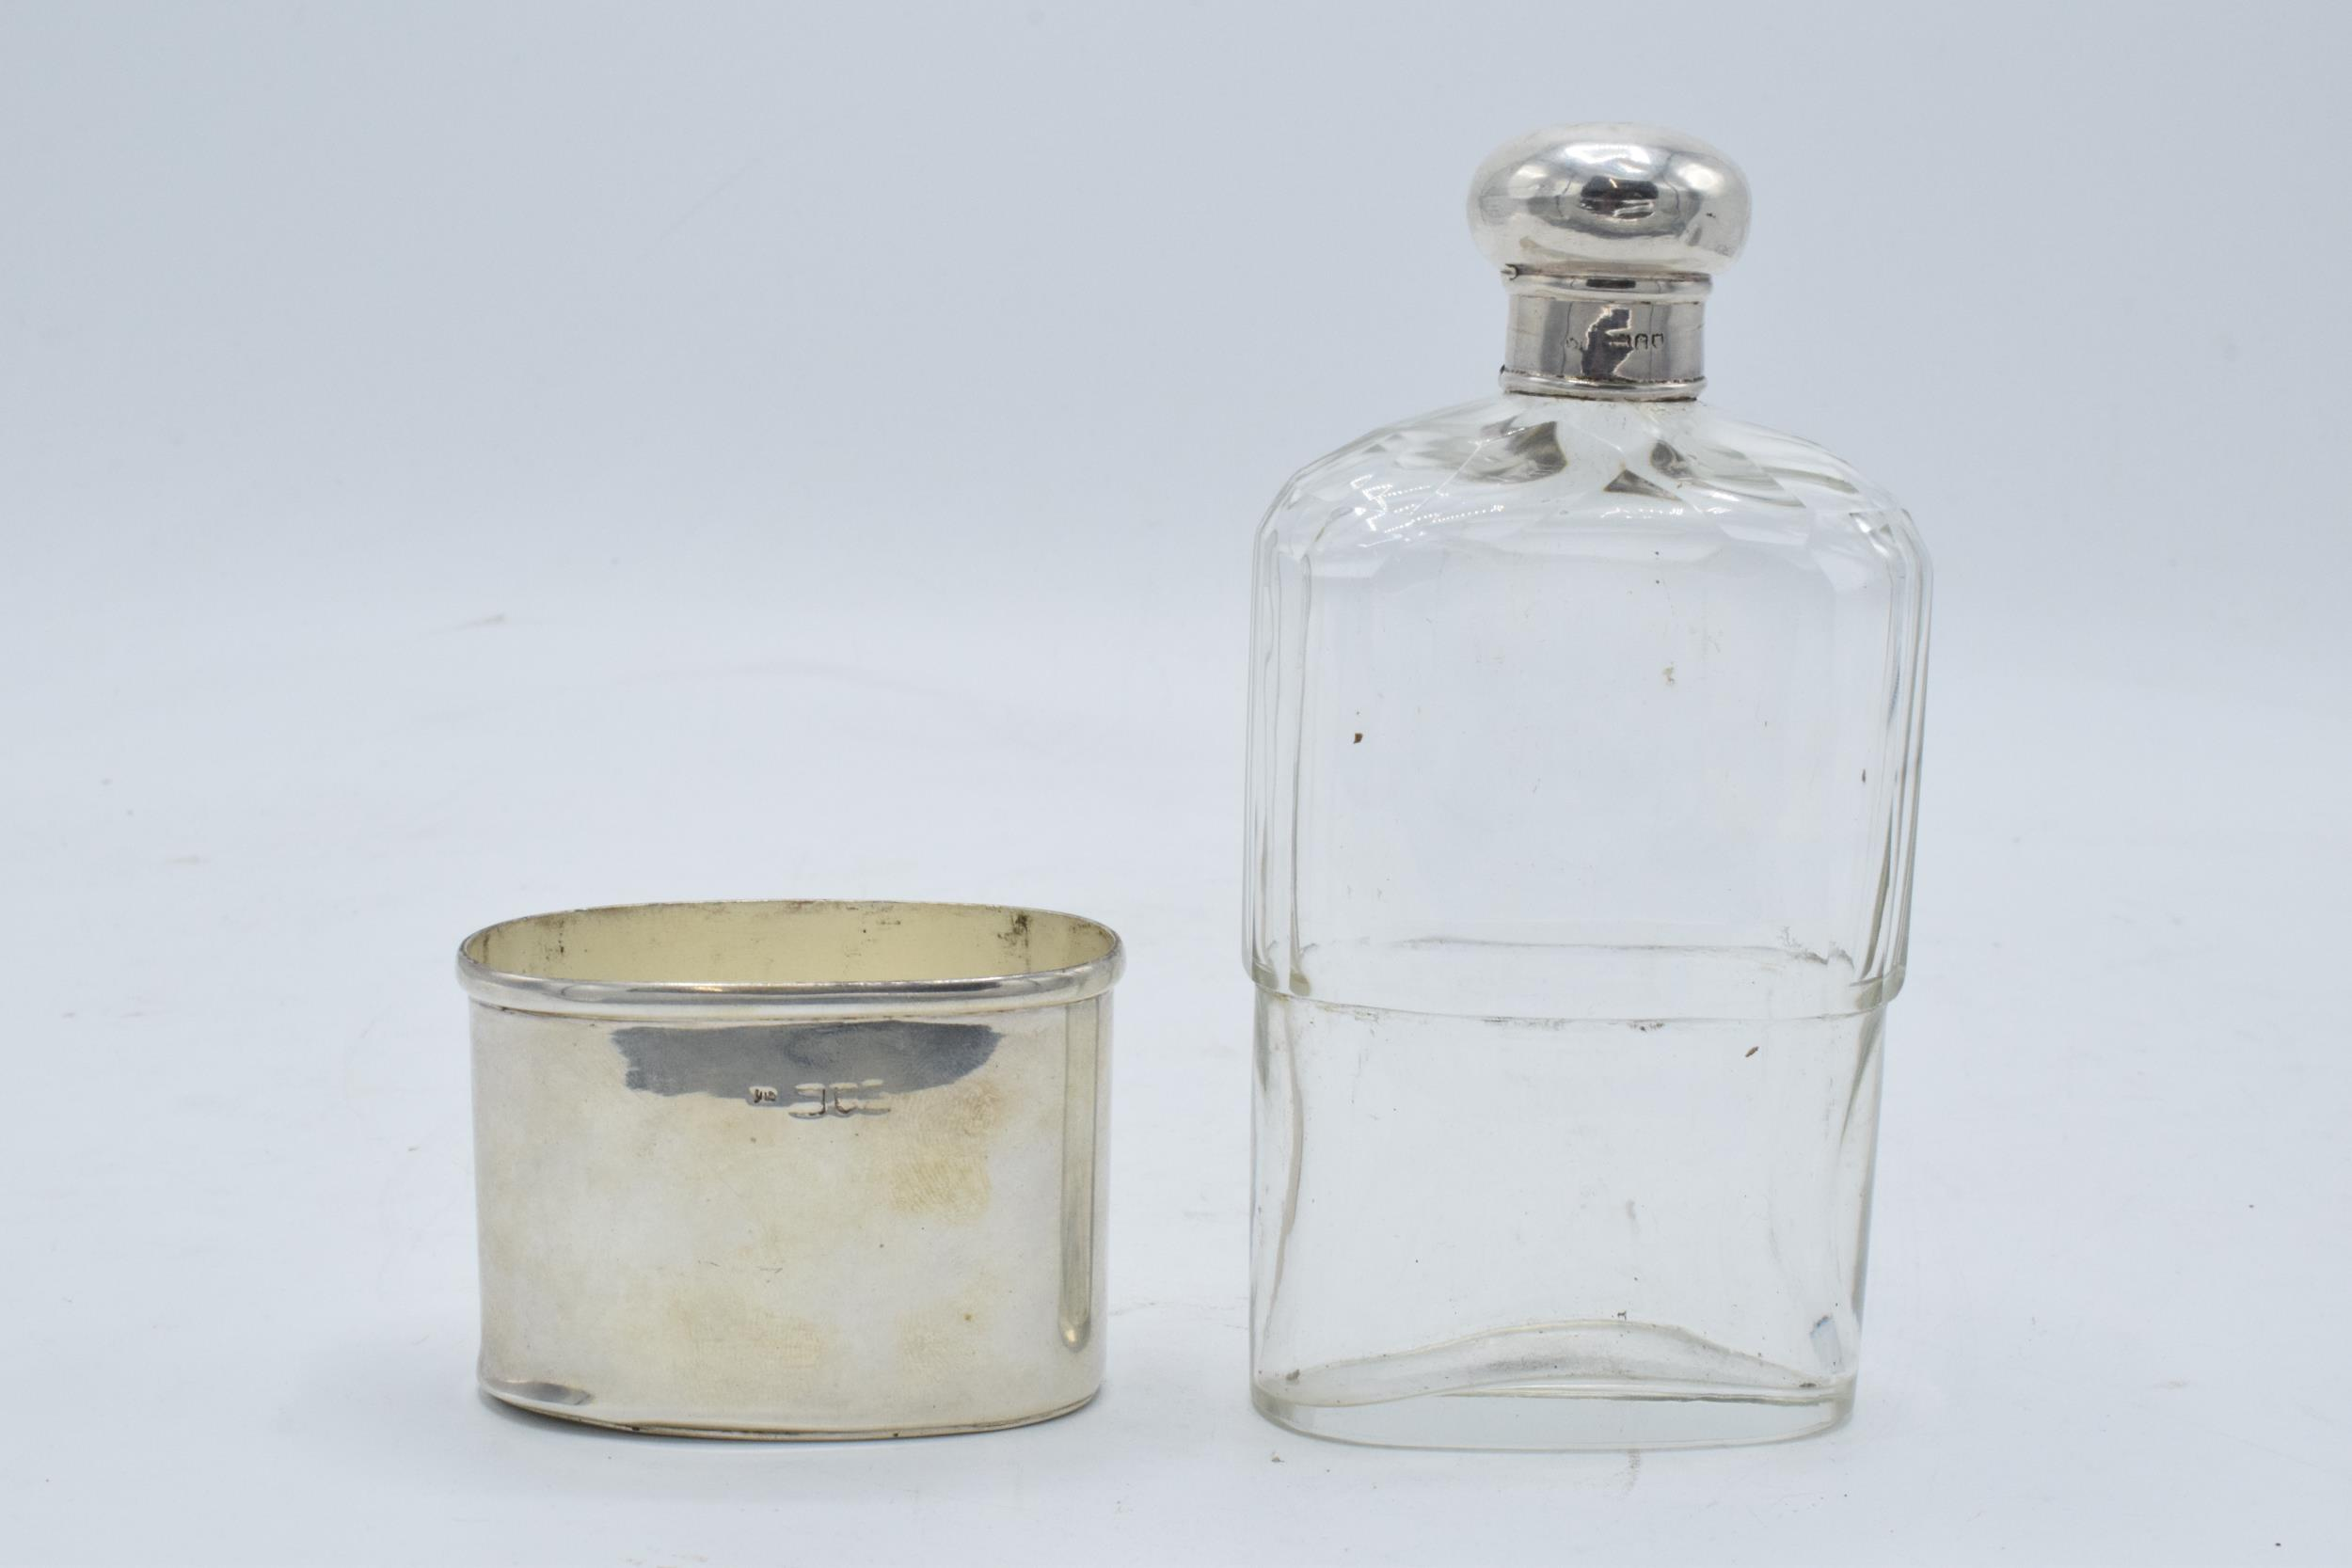 An Edwardian silver and glass hipflask with screw top lid. Hallmarked for London 1902. Hallmarks - Image 5 of 5